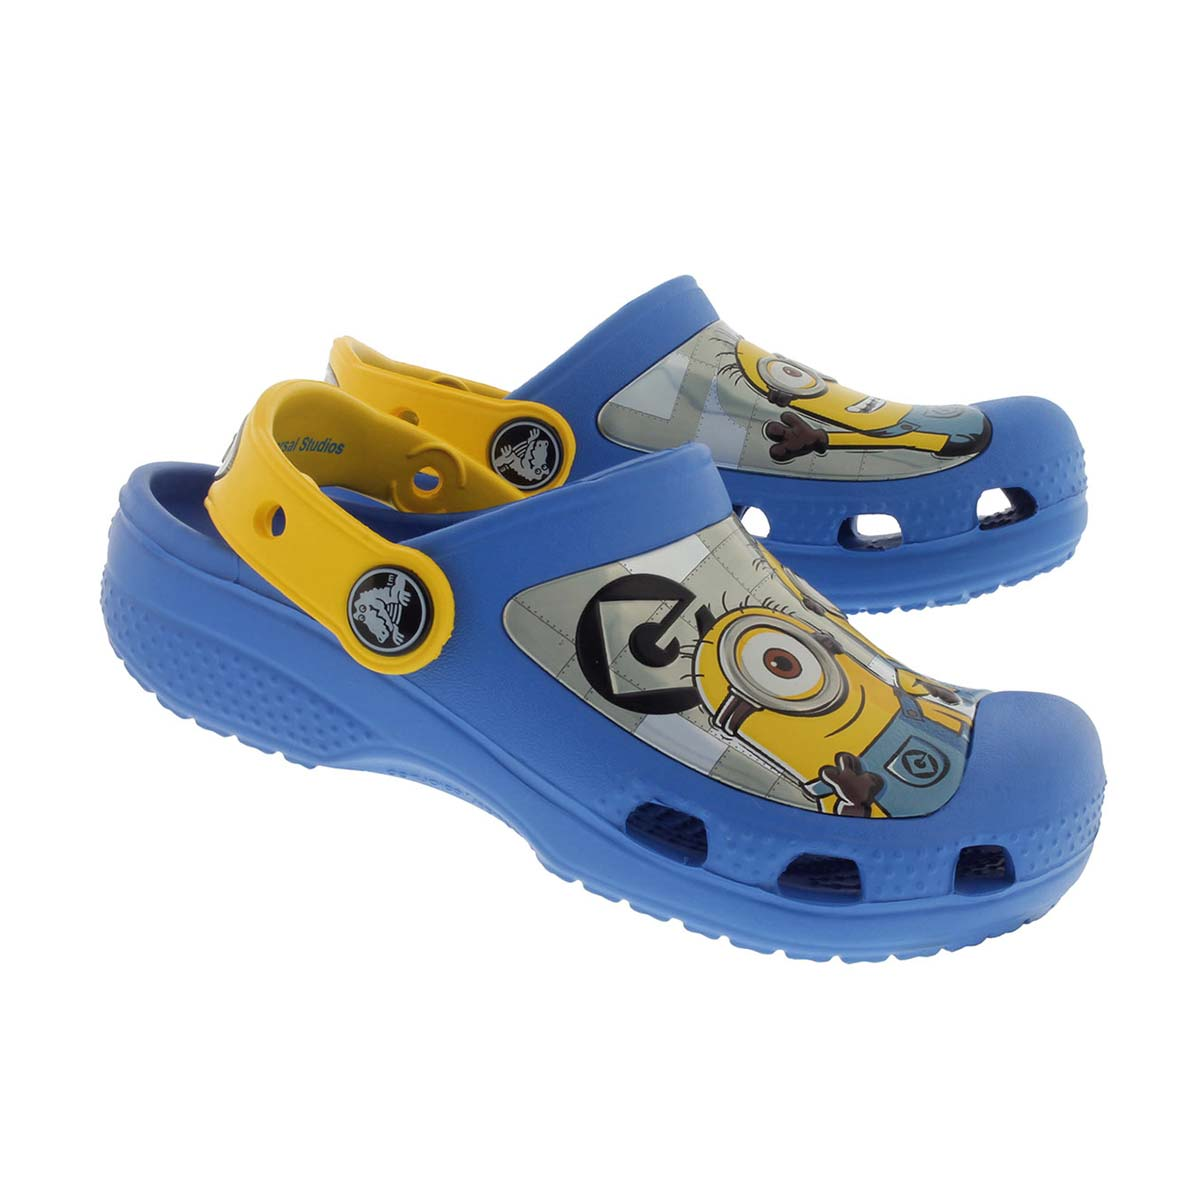 Chlds Minions blue/yellow comfort clog